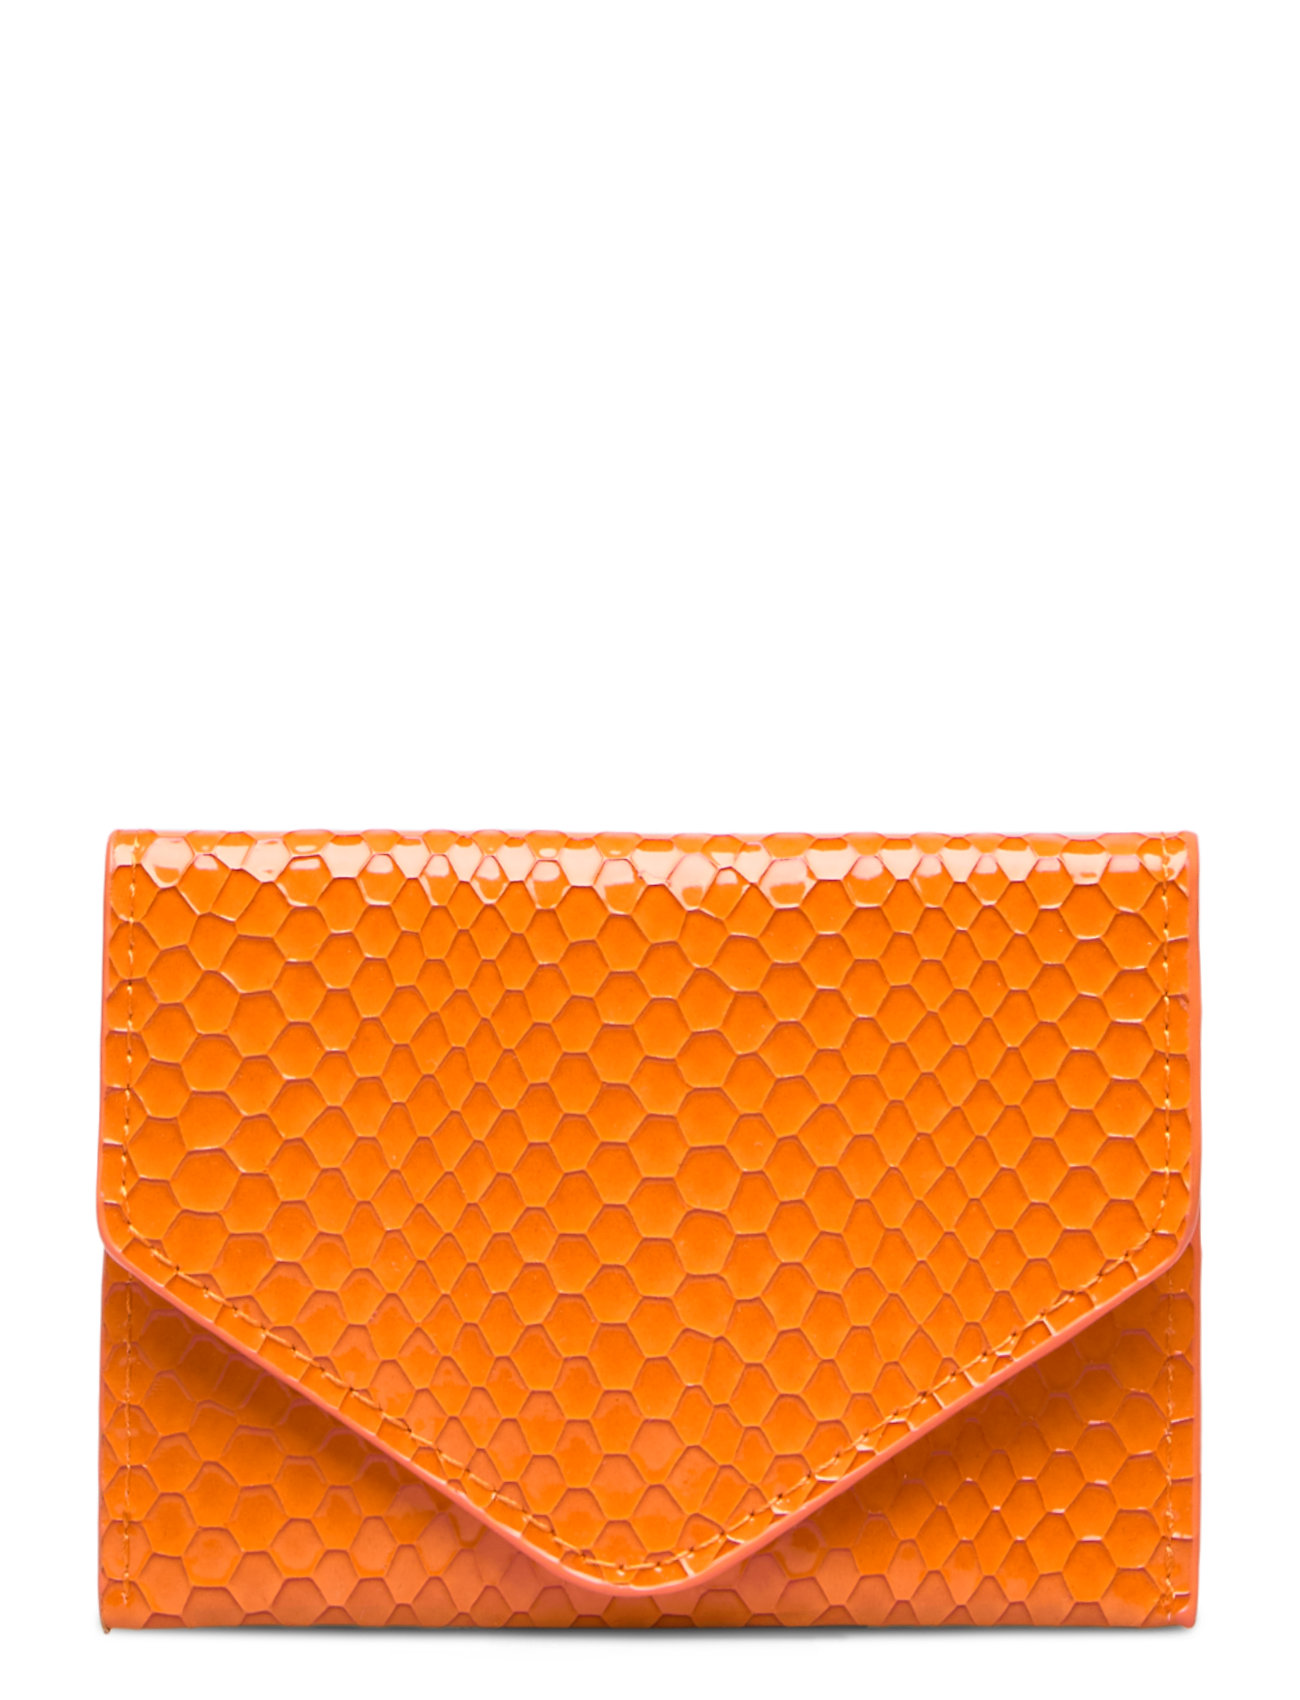 Hvisk WALLET BOA - ORANGE